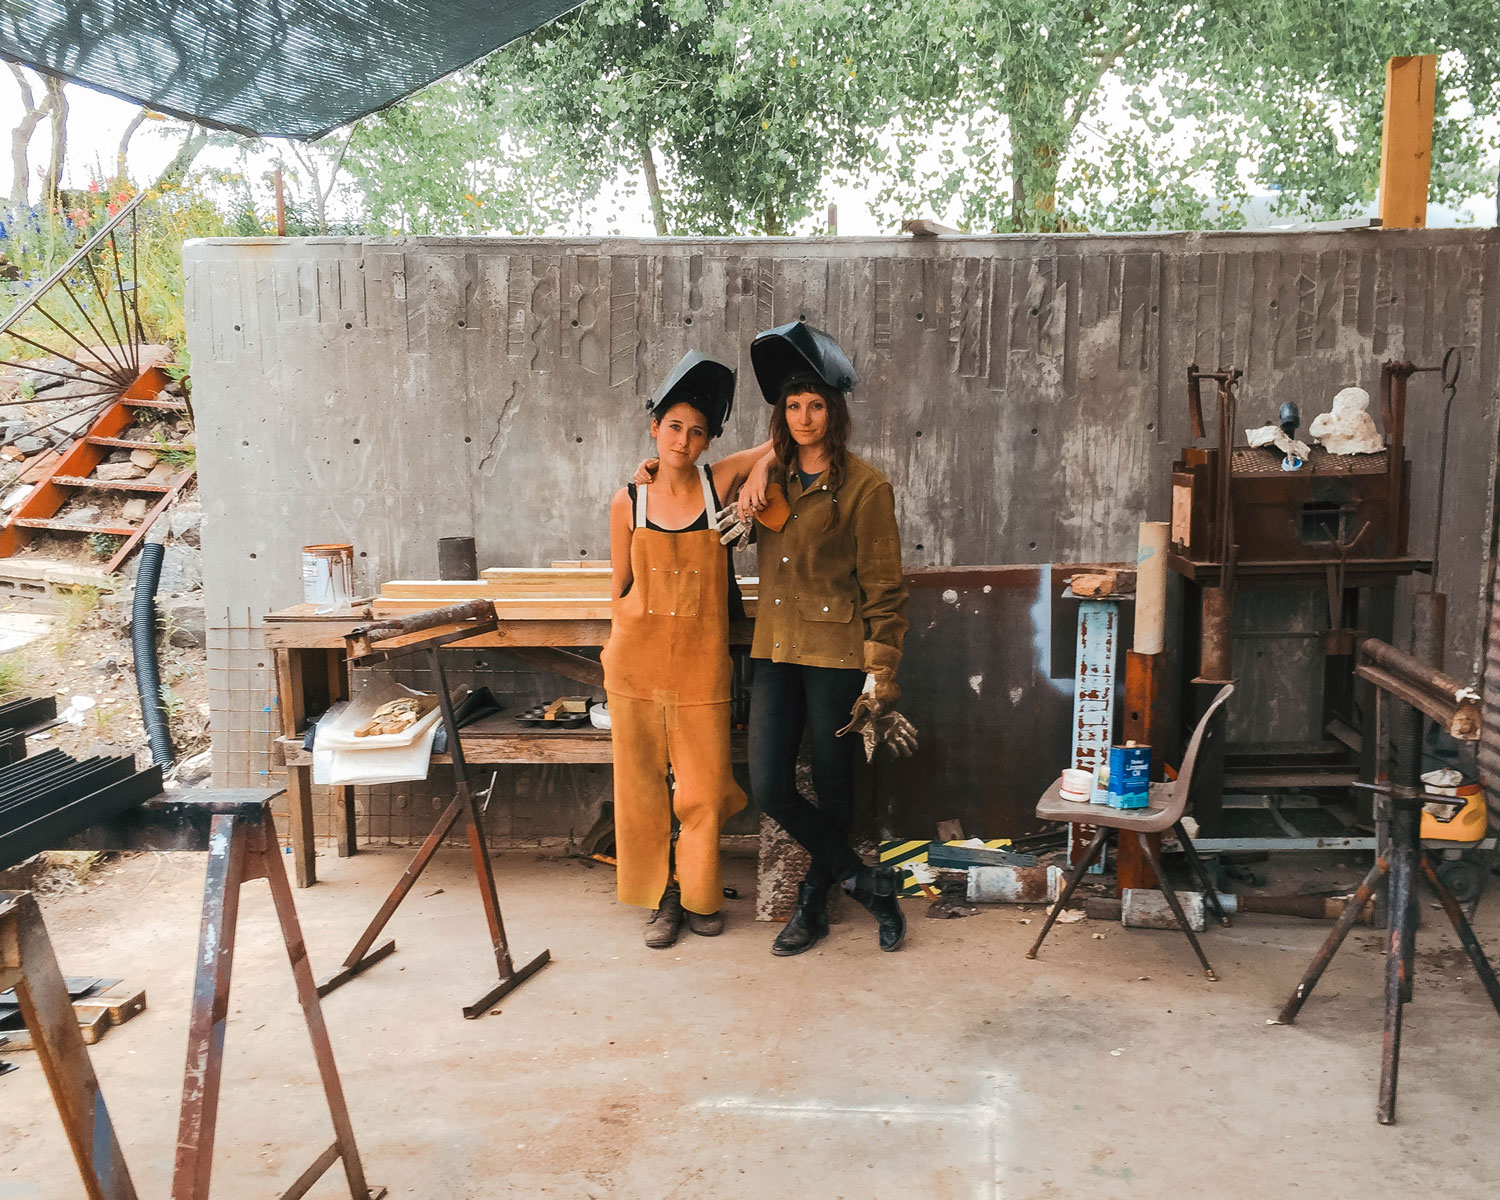 A day in the life of the Arcosanti welding studio